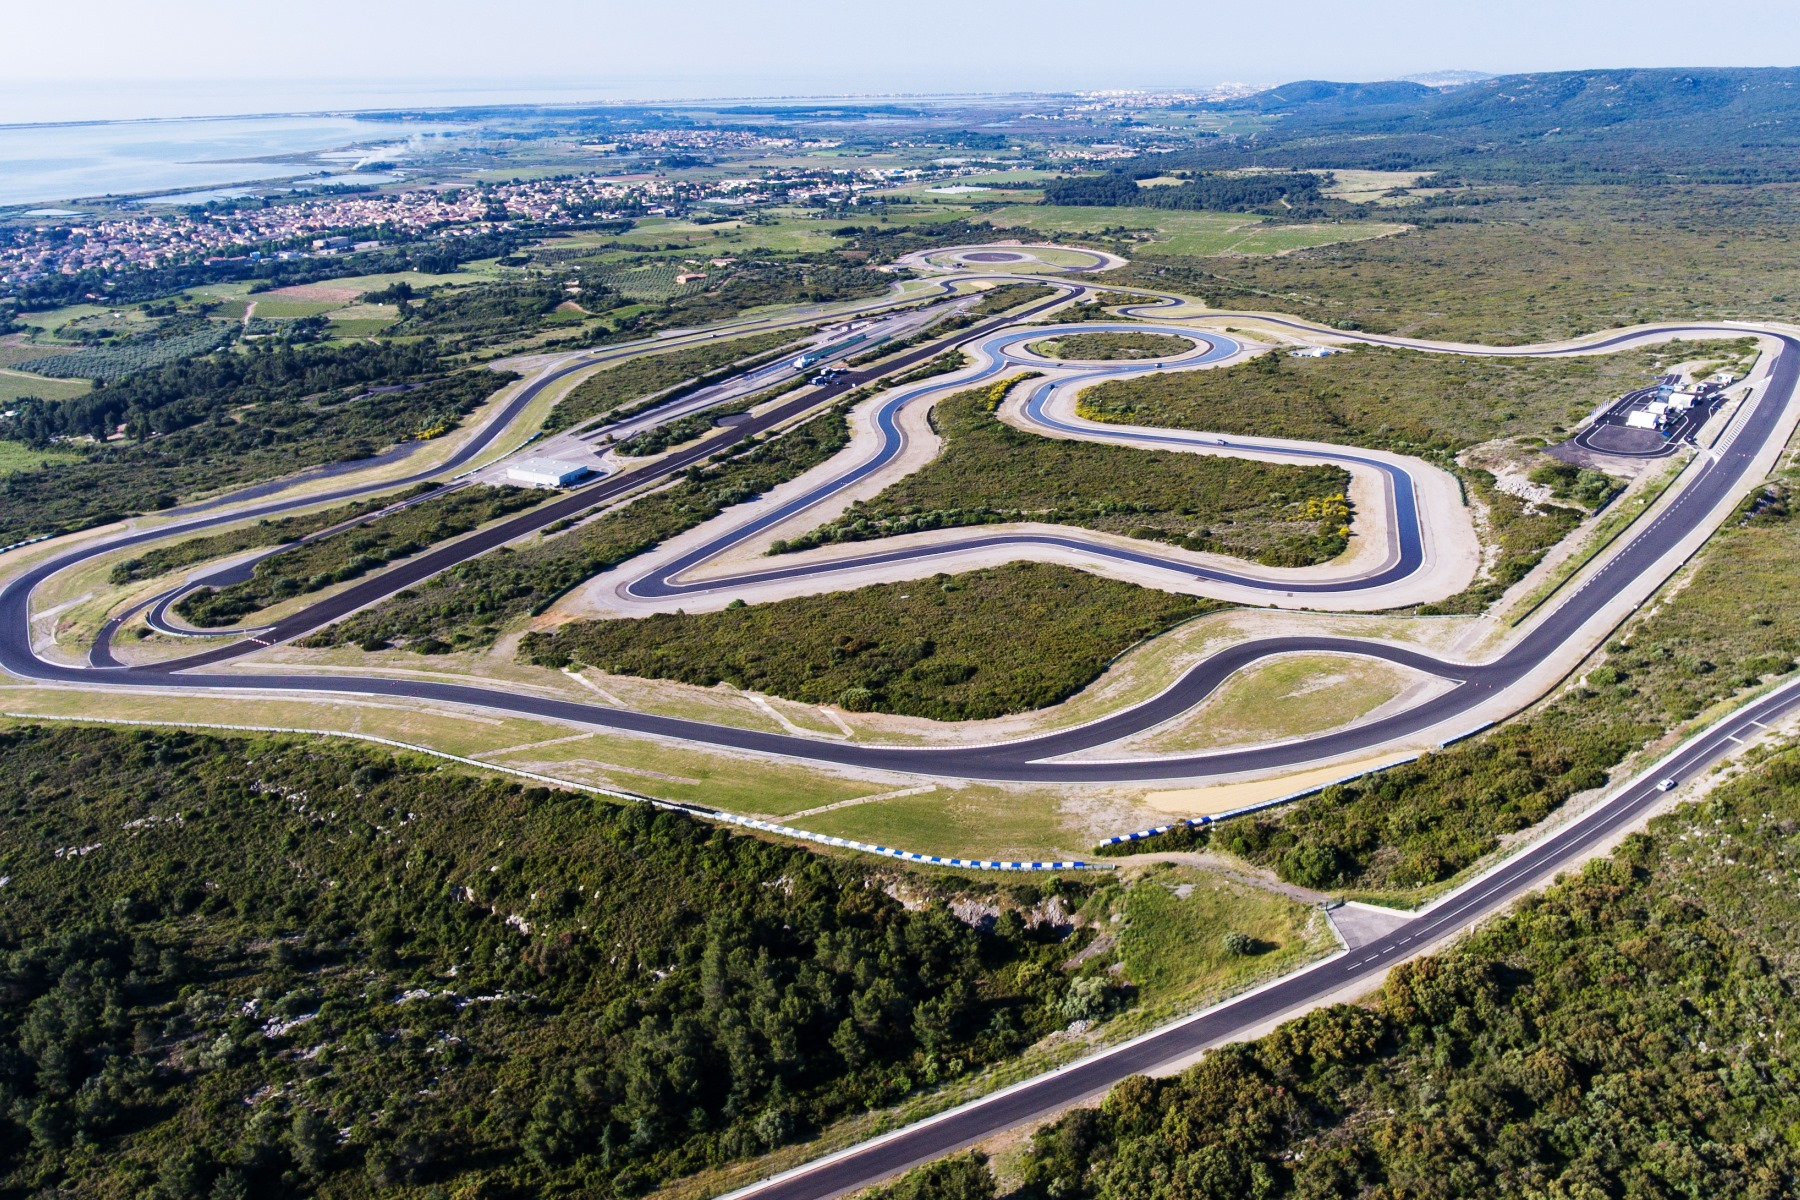 Goodyear's Mireval test circuit, France